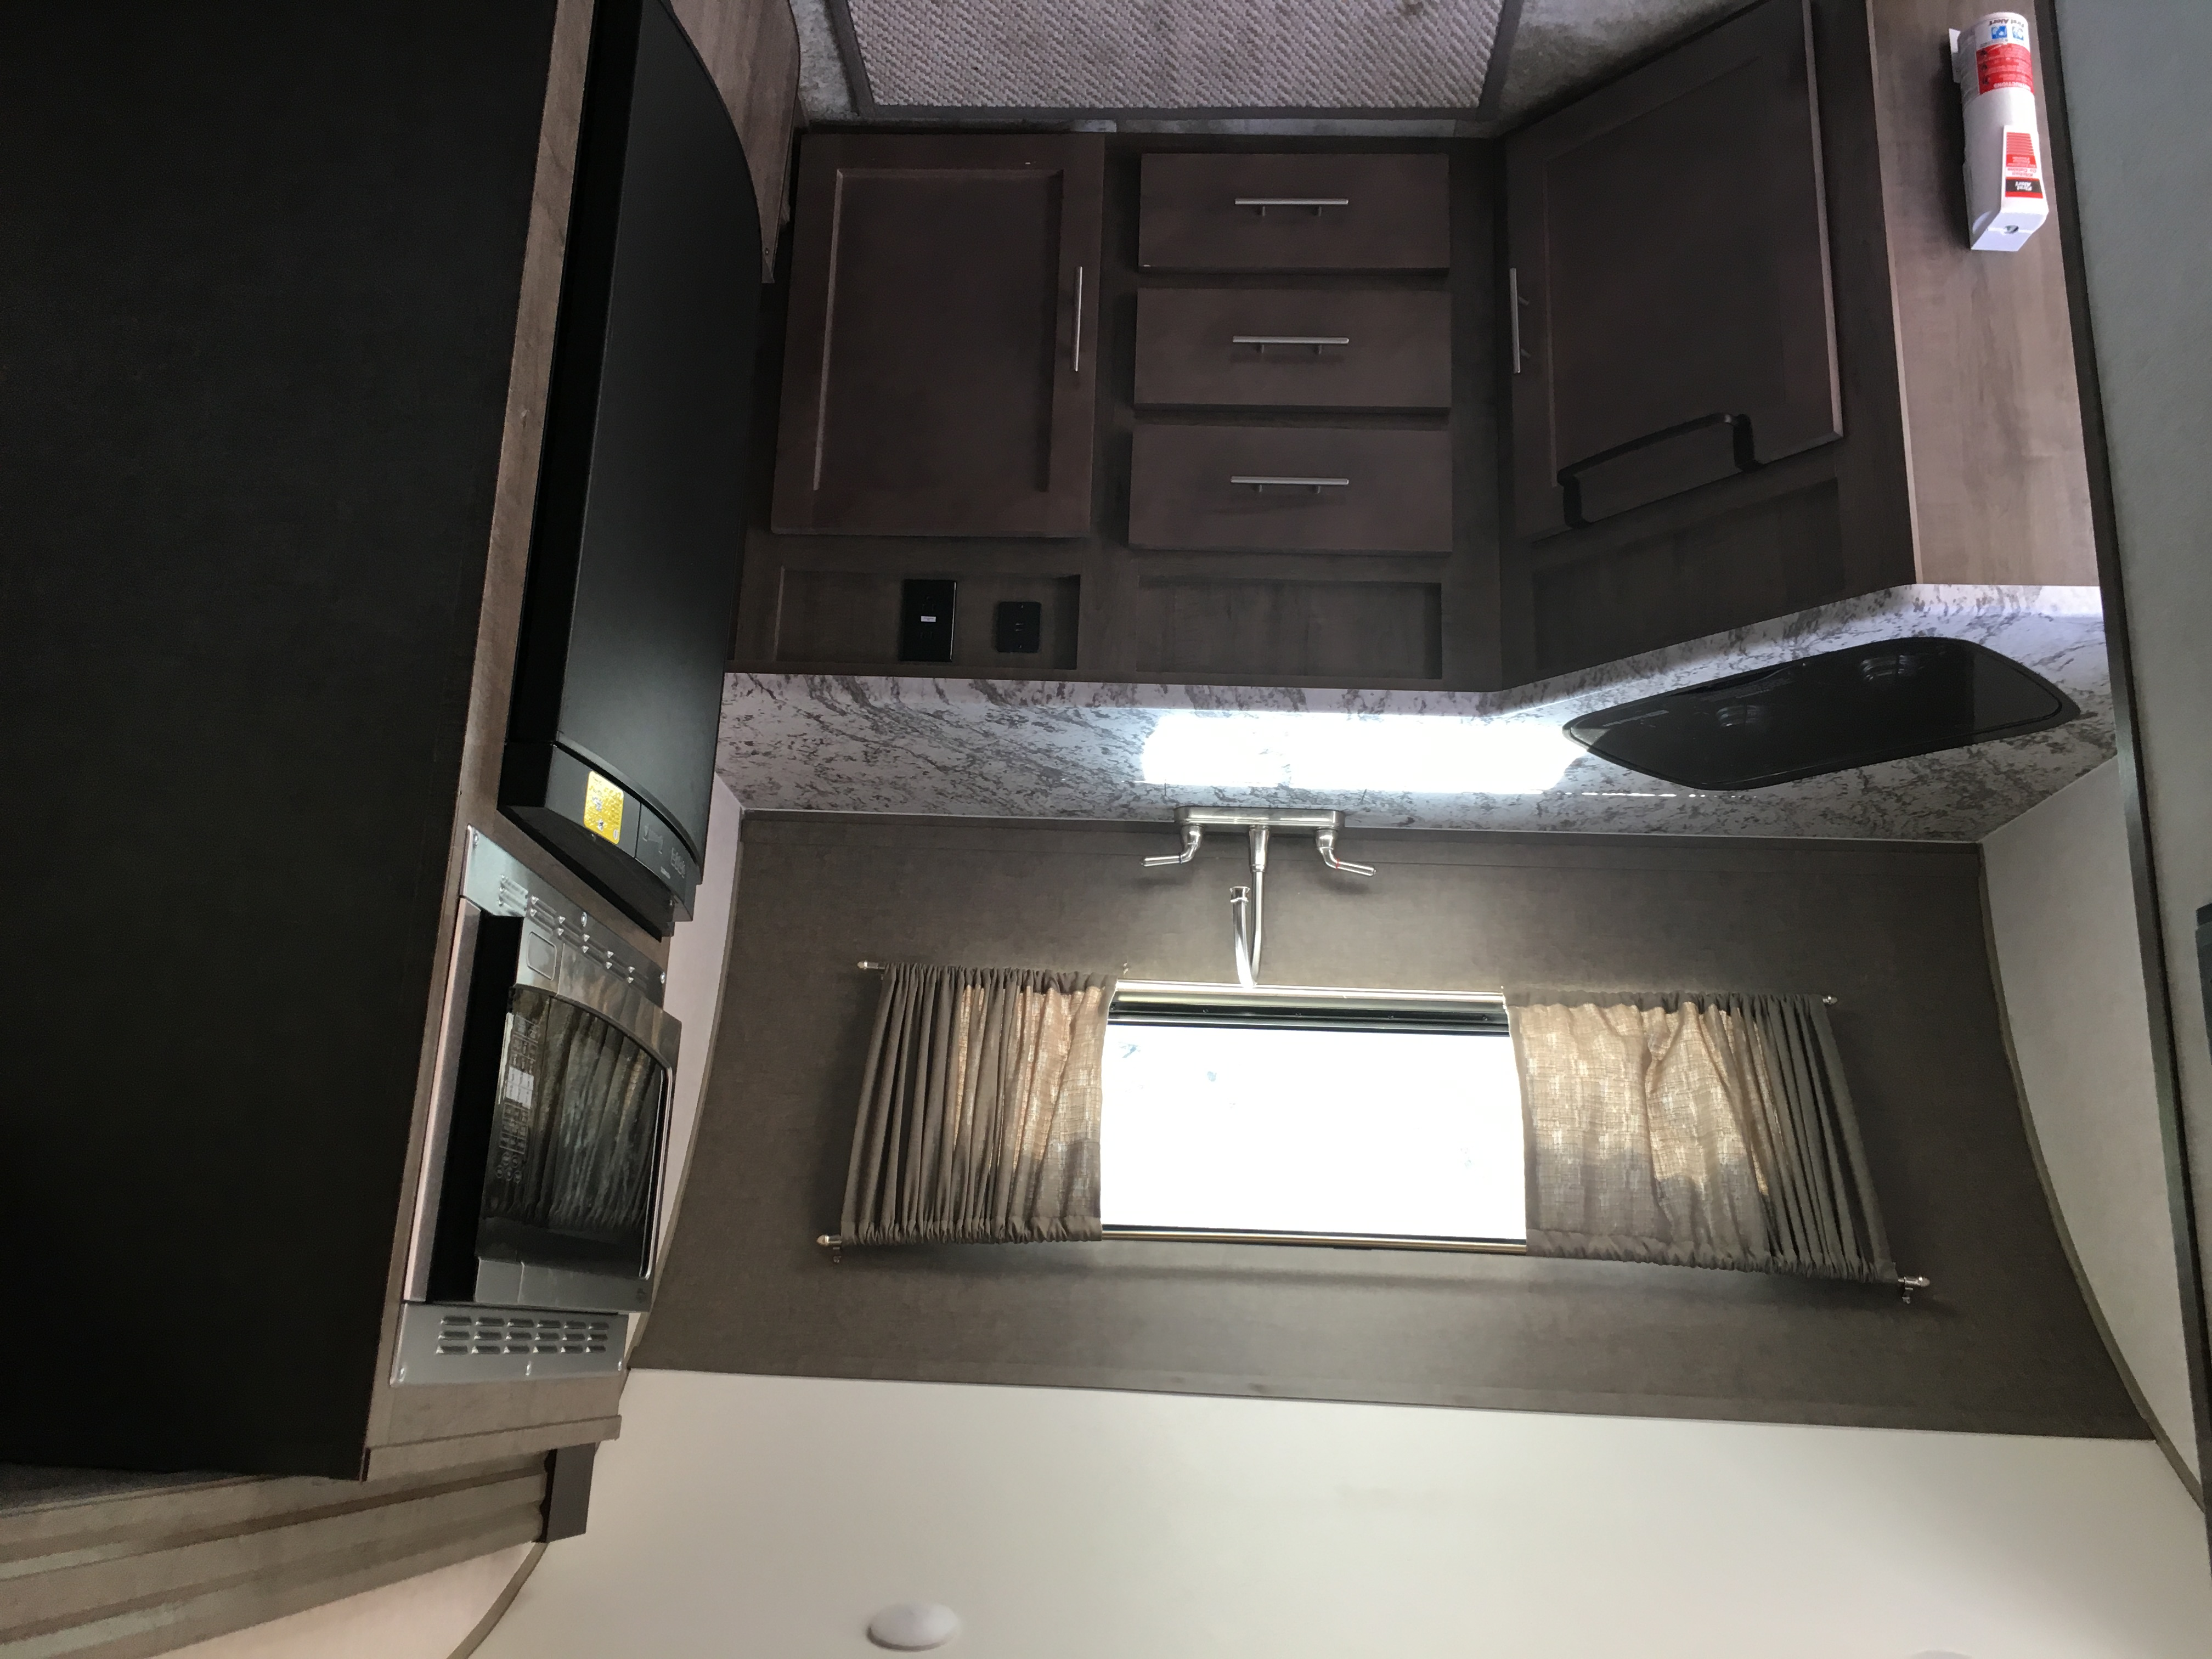 Kitchen has two burner cooktop, faucet, sink, fridge, and sink.  There are some basic pot/pan, cutlery, and plates/glasses.